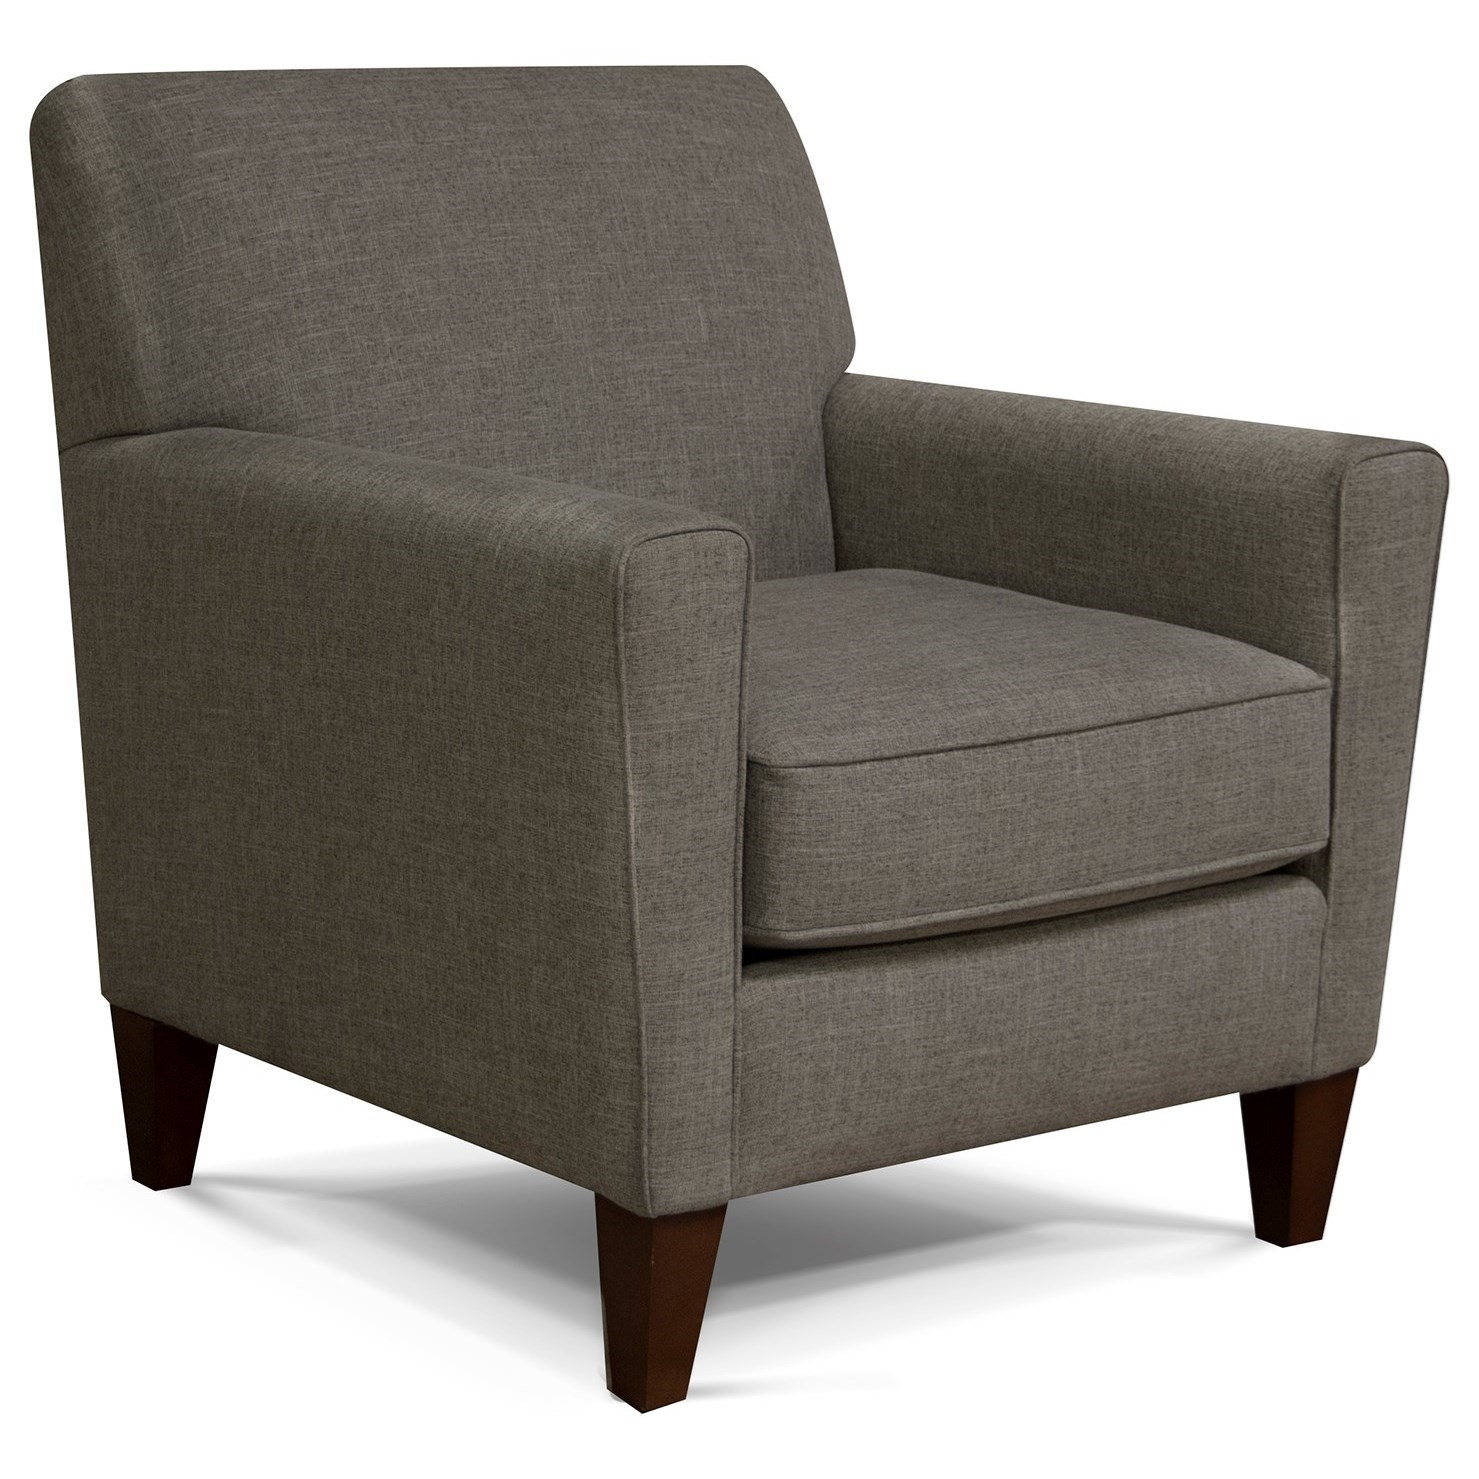 Collegedale Upholstered Chair by England at Van Hill Furniture